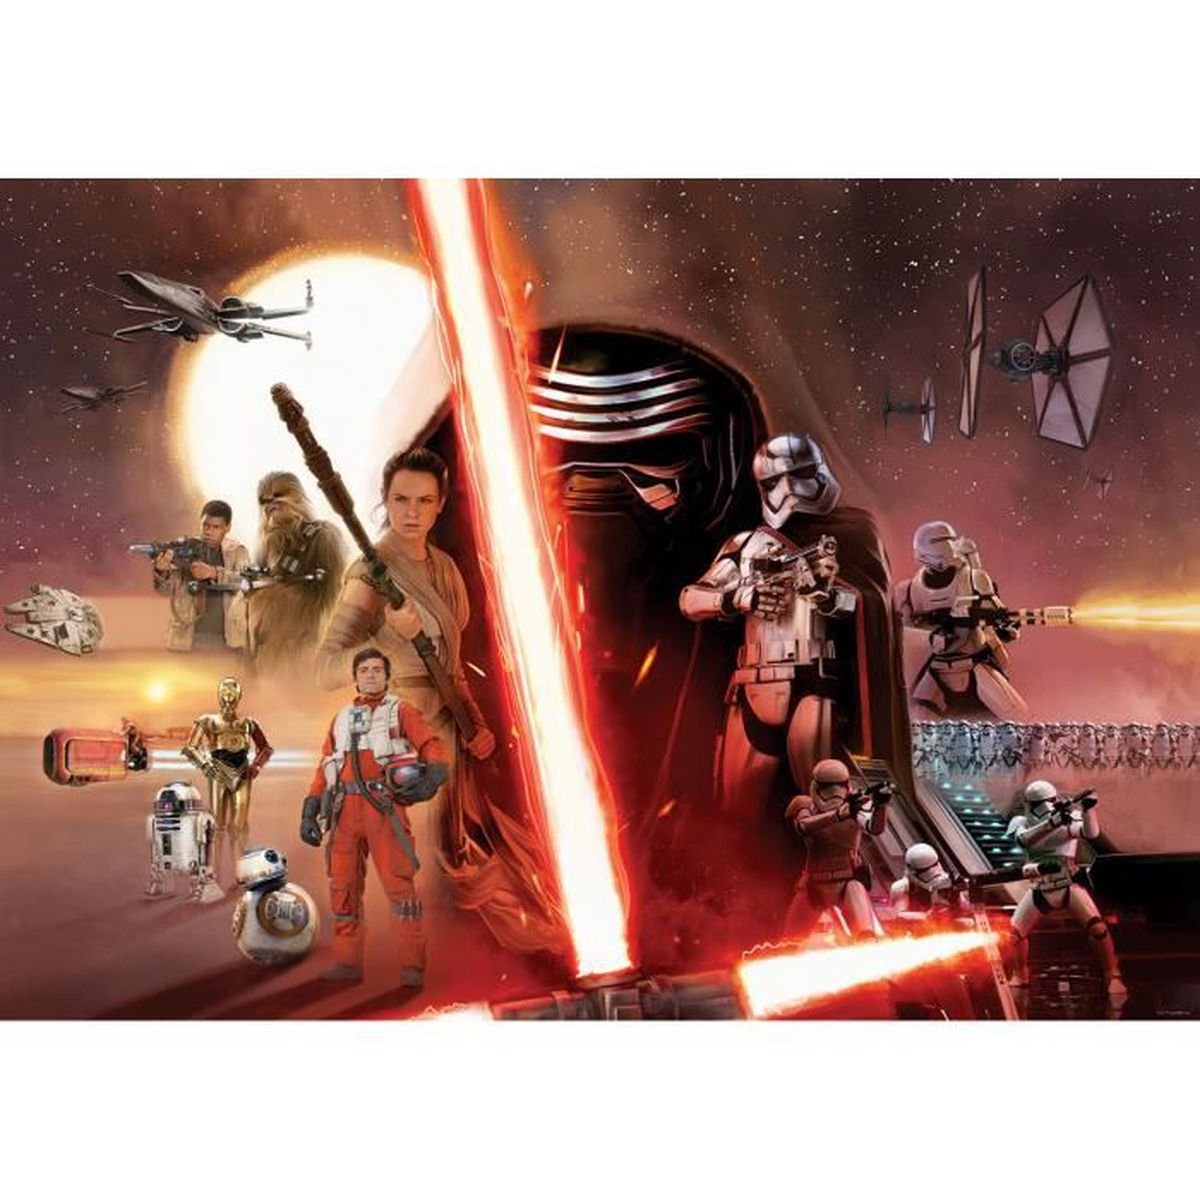 fresque murale star wars 104 x 152,5 cm – papier peint the force